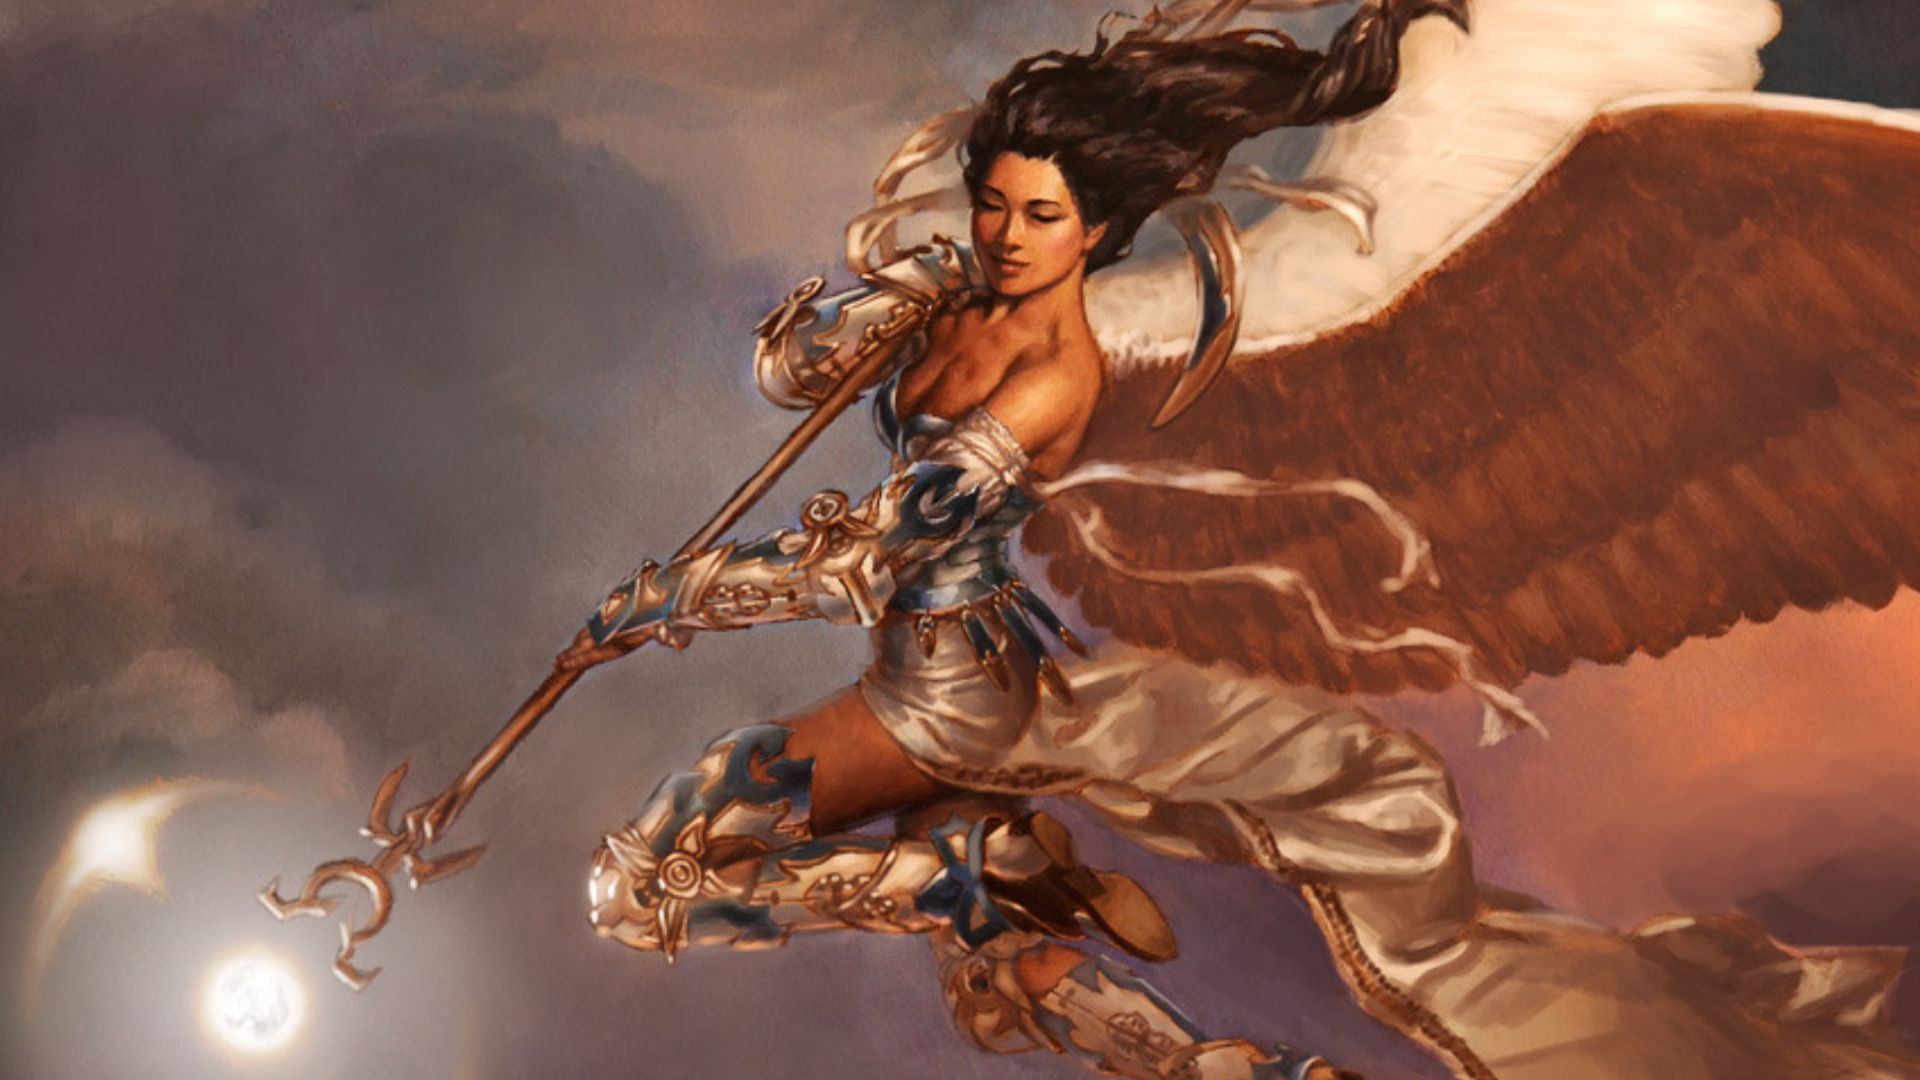 Fantasy Angel Wallpaper (With images) Winged people